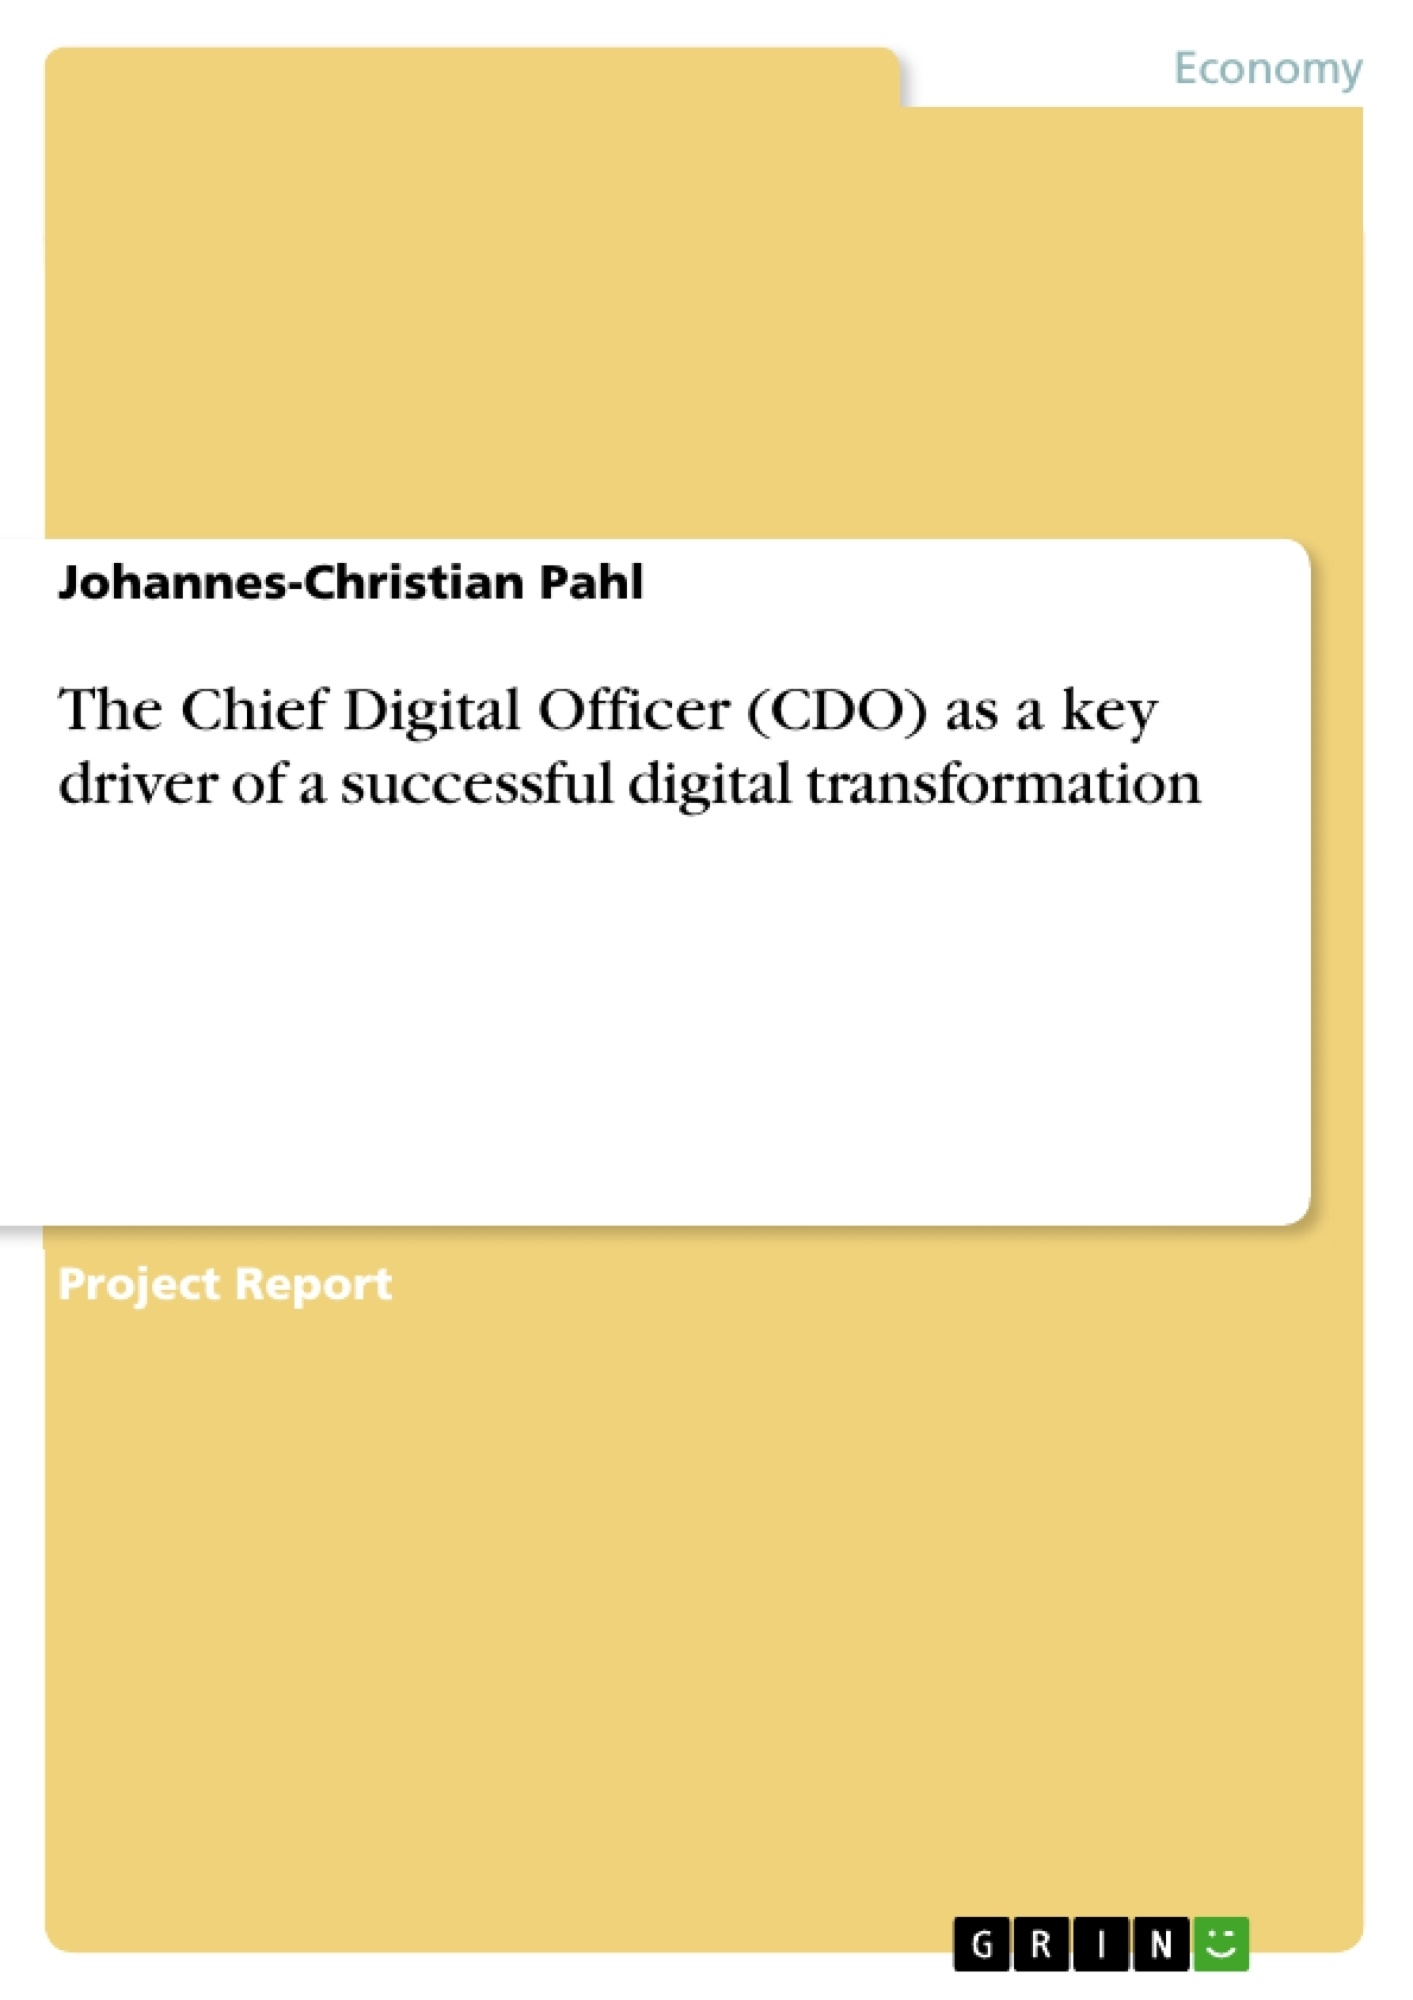 Title: The Chief Digital Officer (CDO) as a key driver of a successful digital transformation